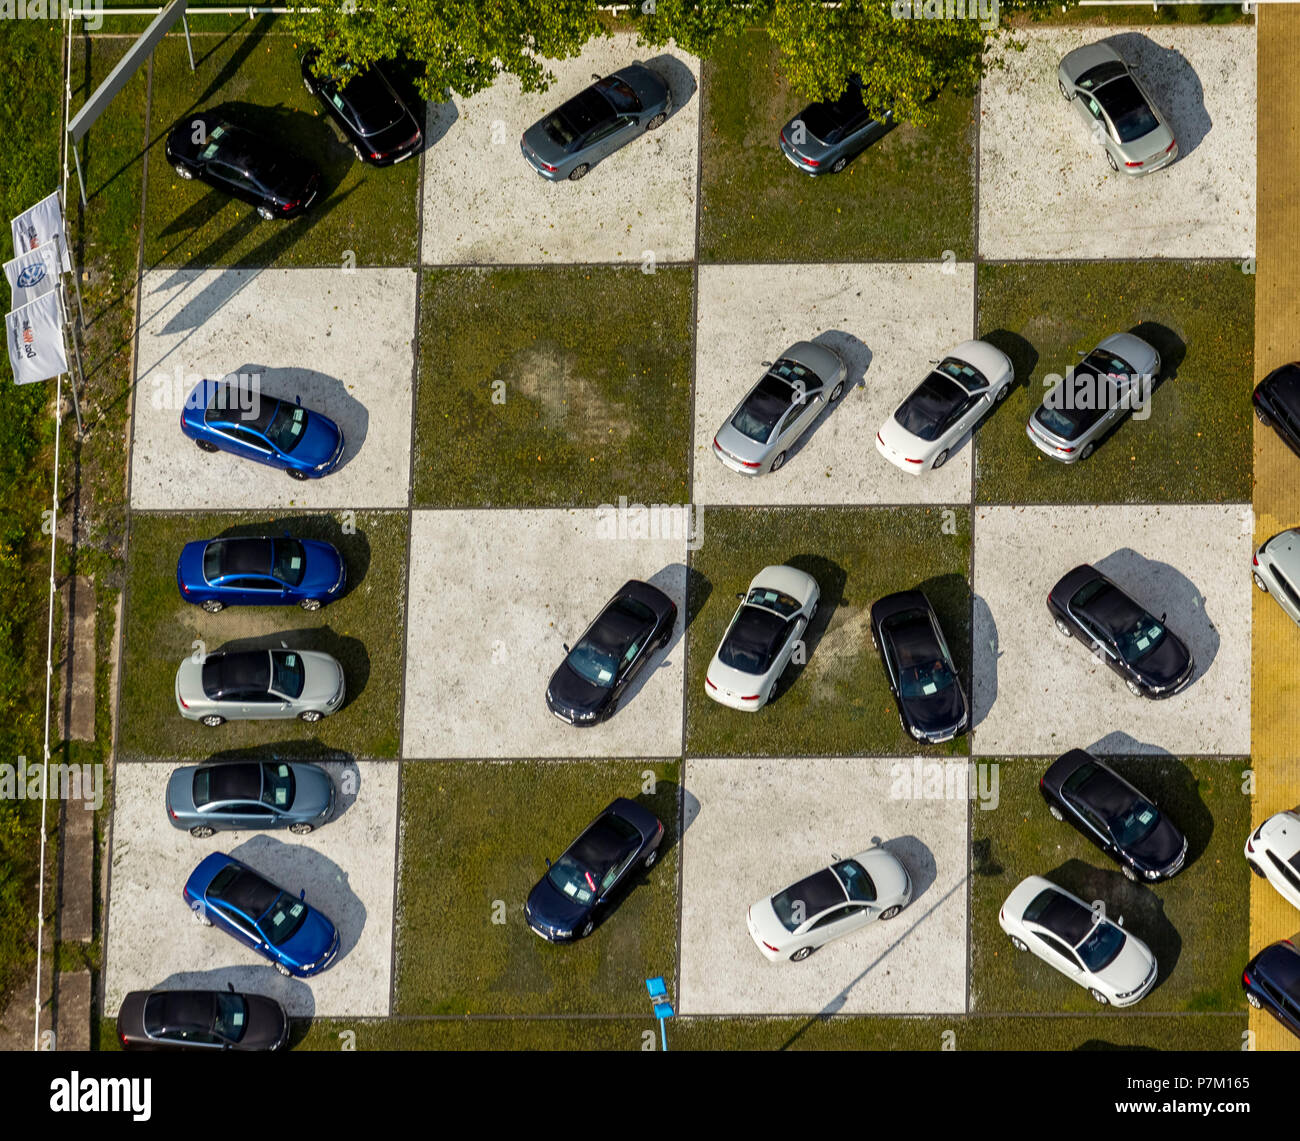 Aerial Photo Car Sales On A Chessboard Checkerboard Pattern Car